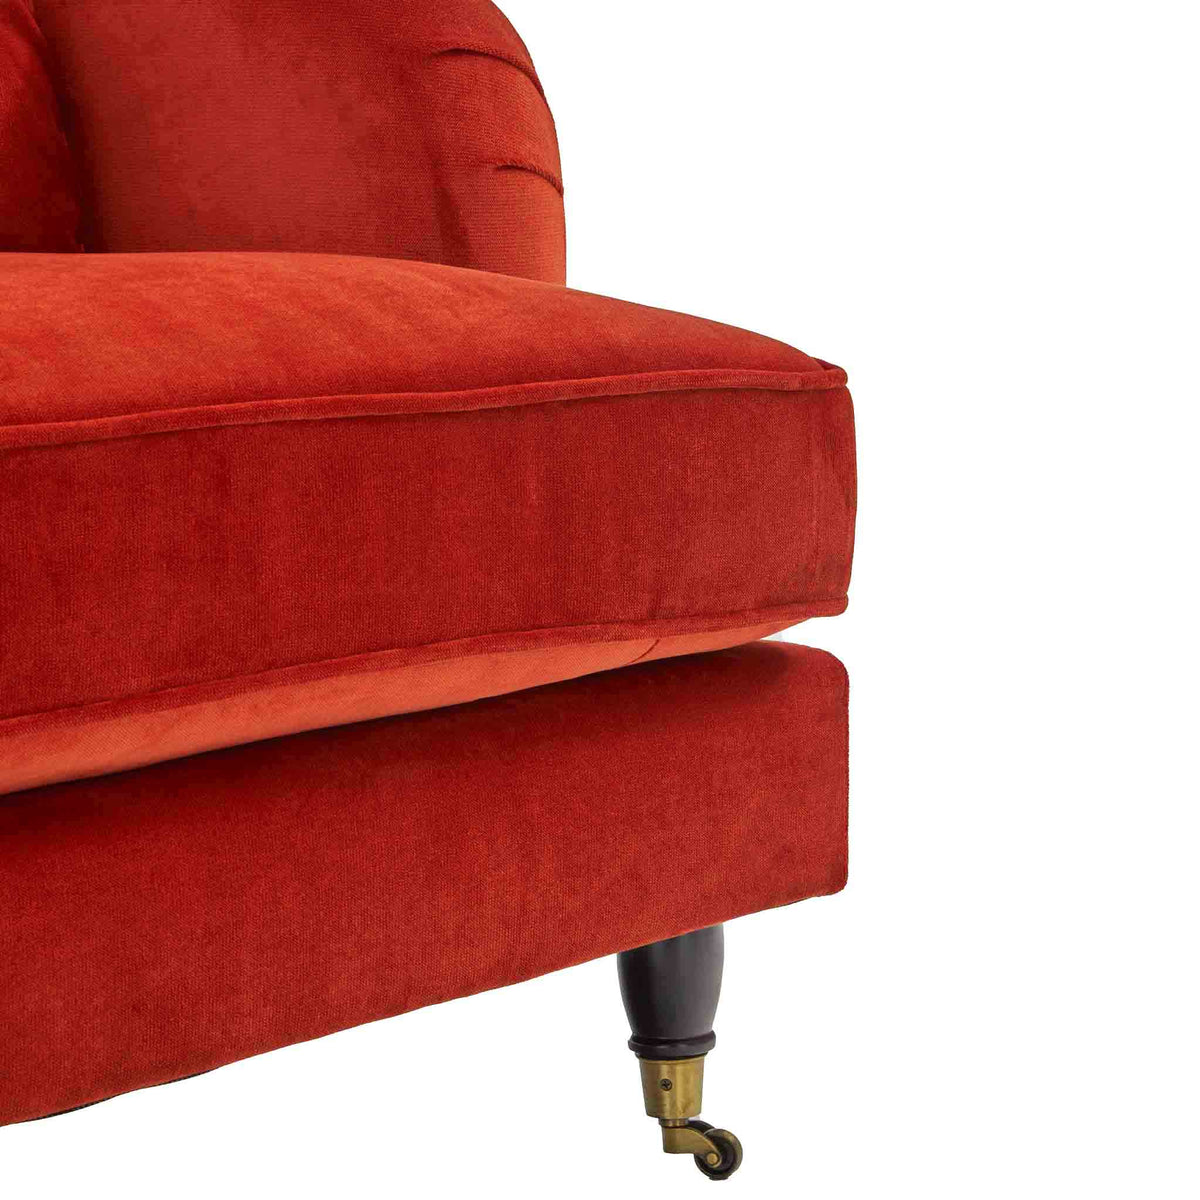 close up of the turned legs on the Piper Apricot Velvet Corner Chaise Sofa from Roseland Furniture